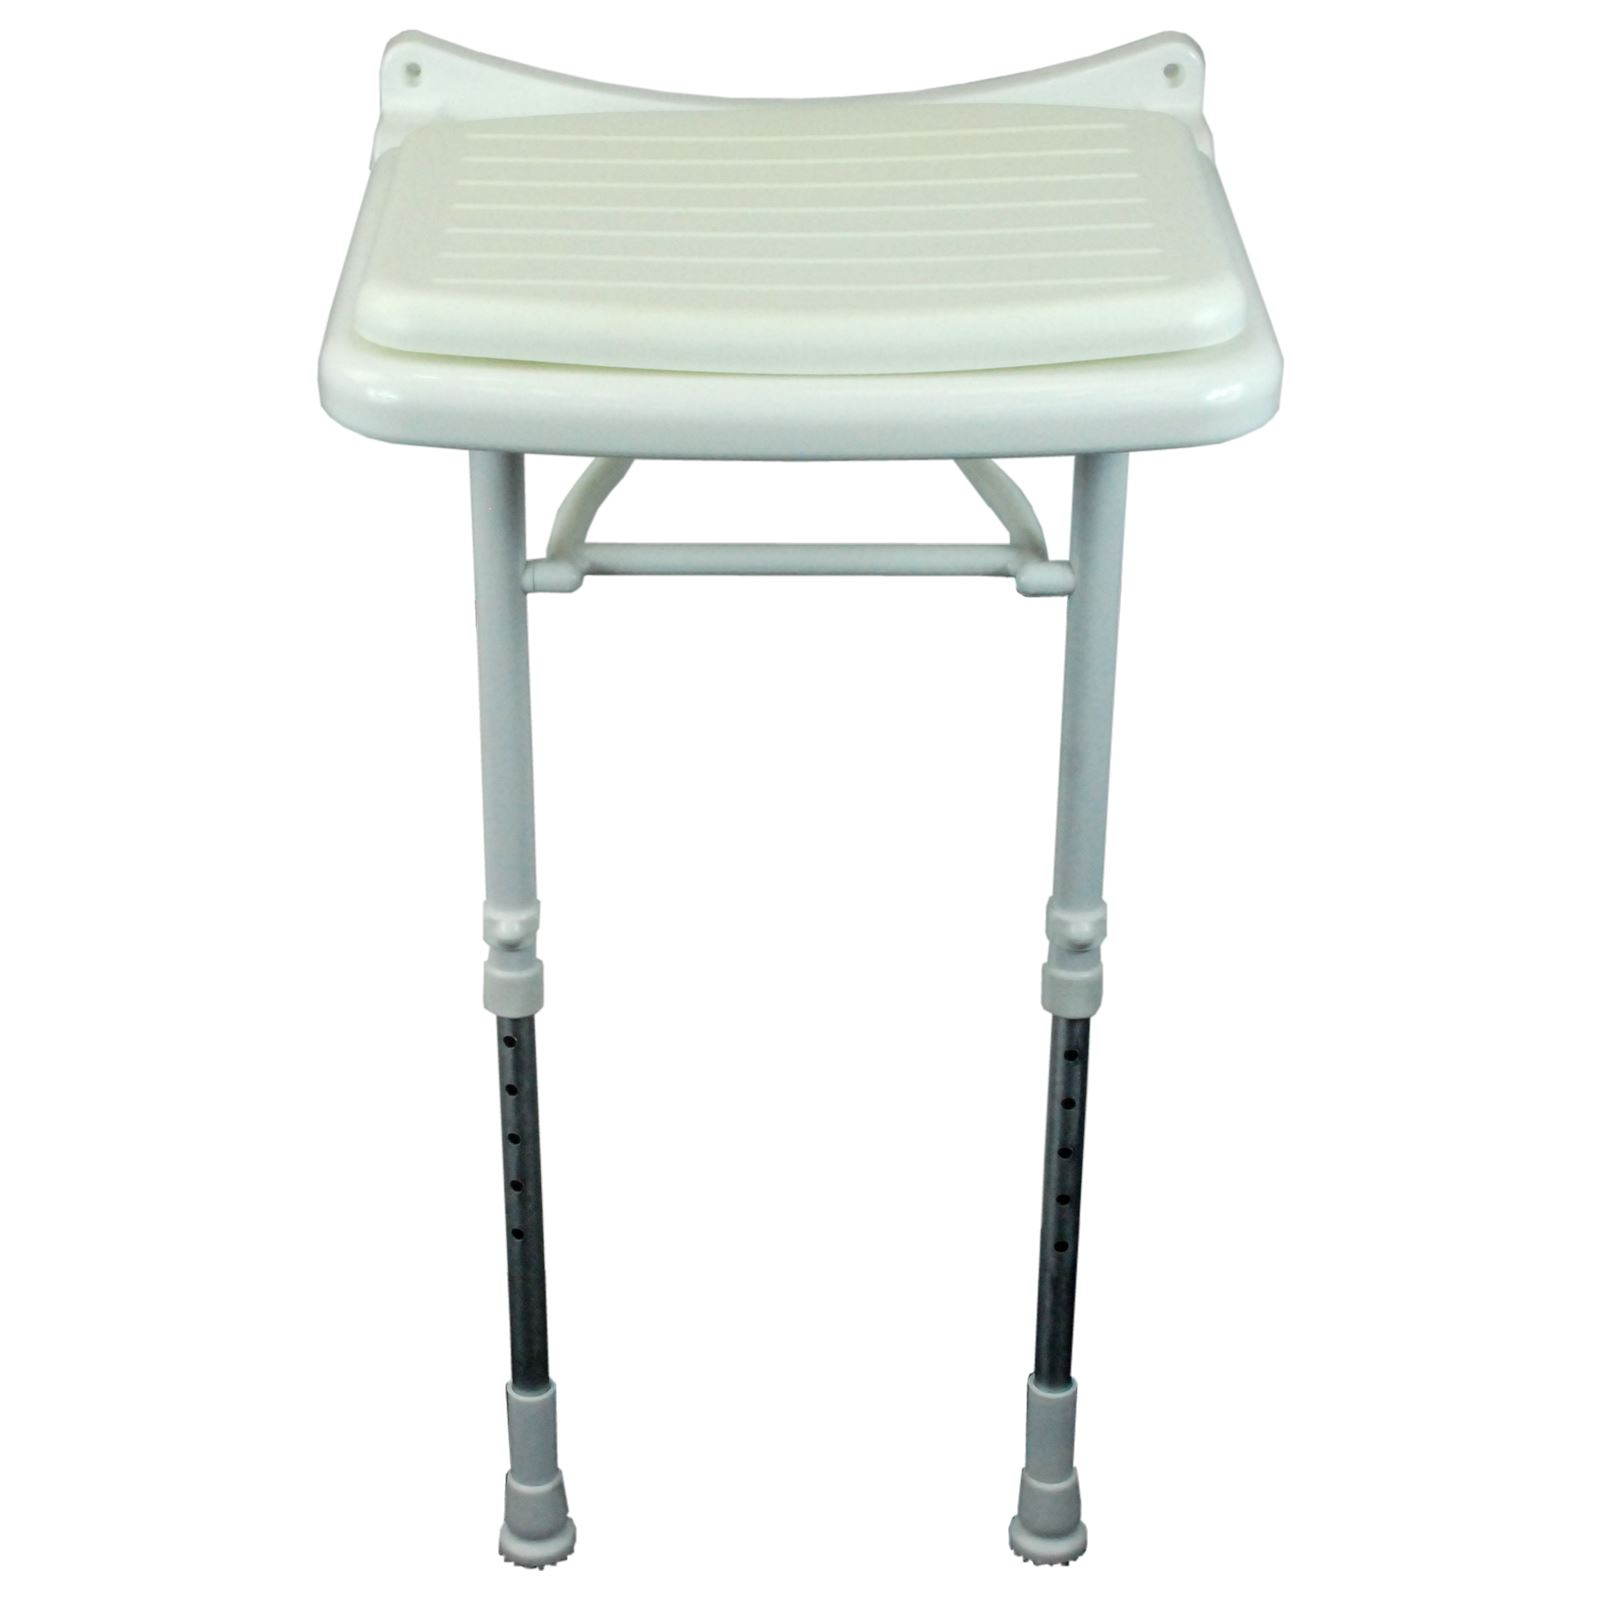 Saracen Padded Seat Wall Mounted Hinged Shower Seat With Adjustable ...